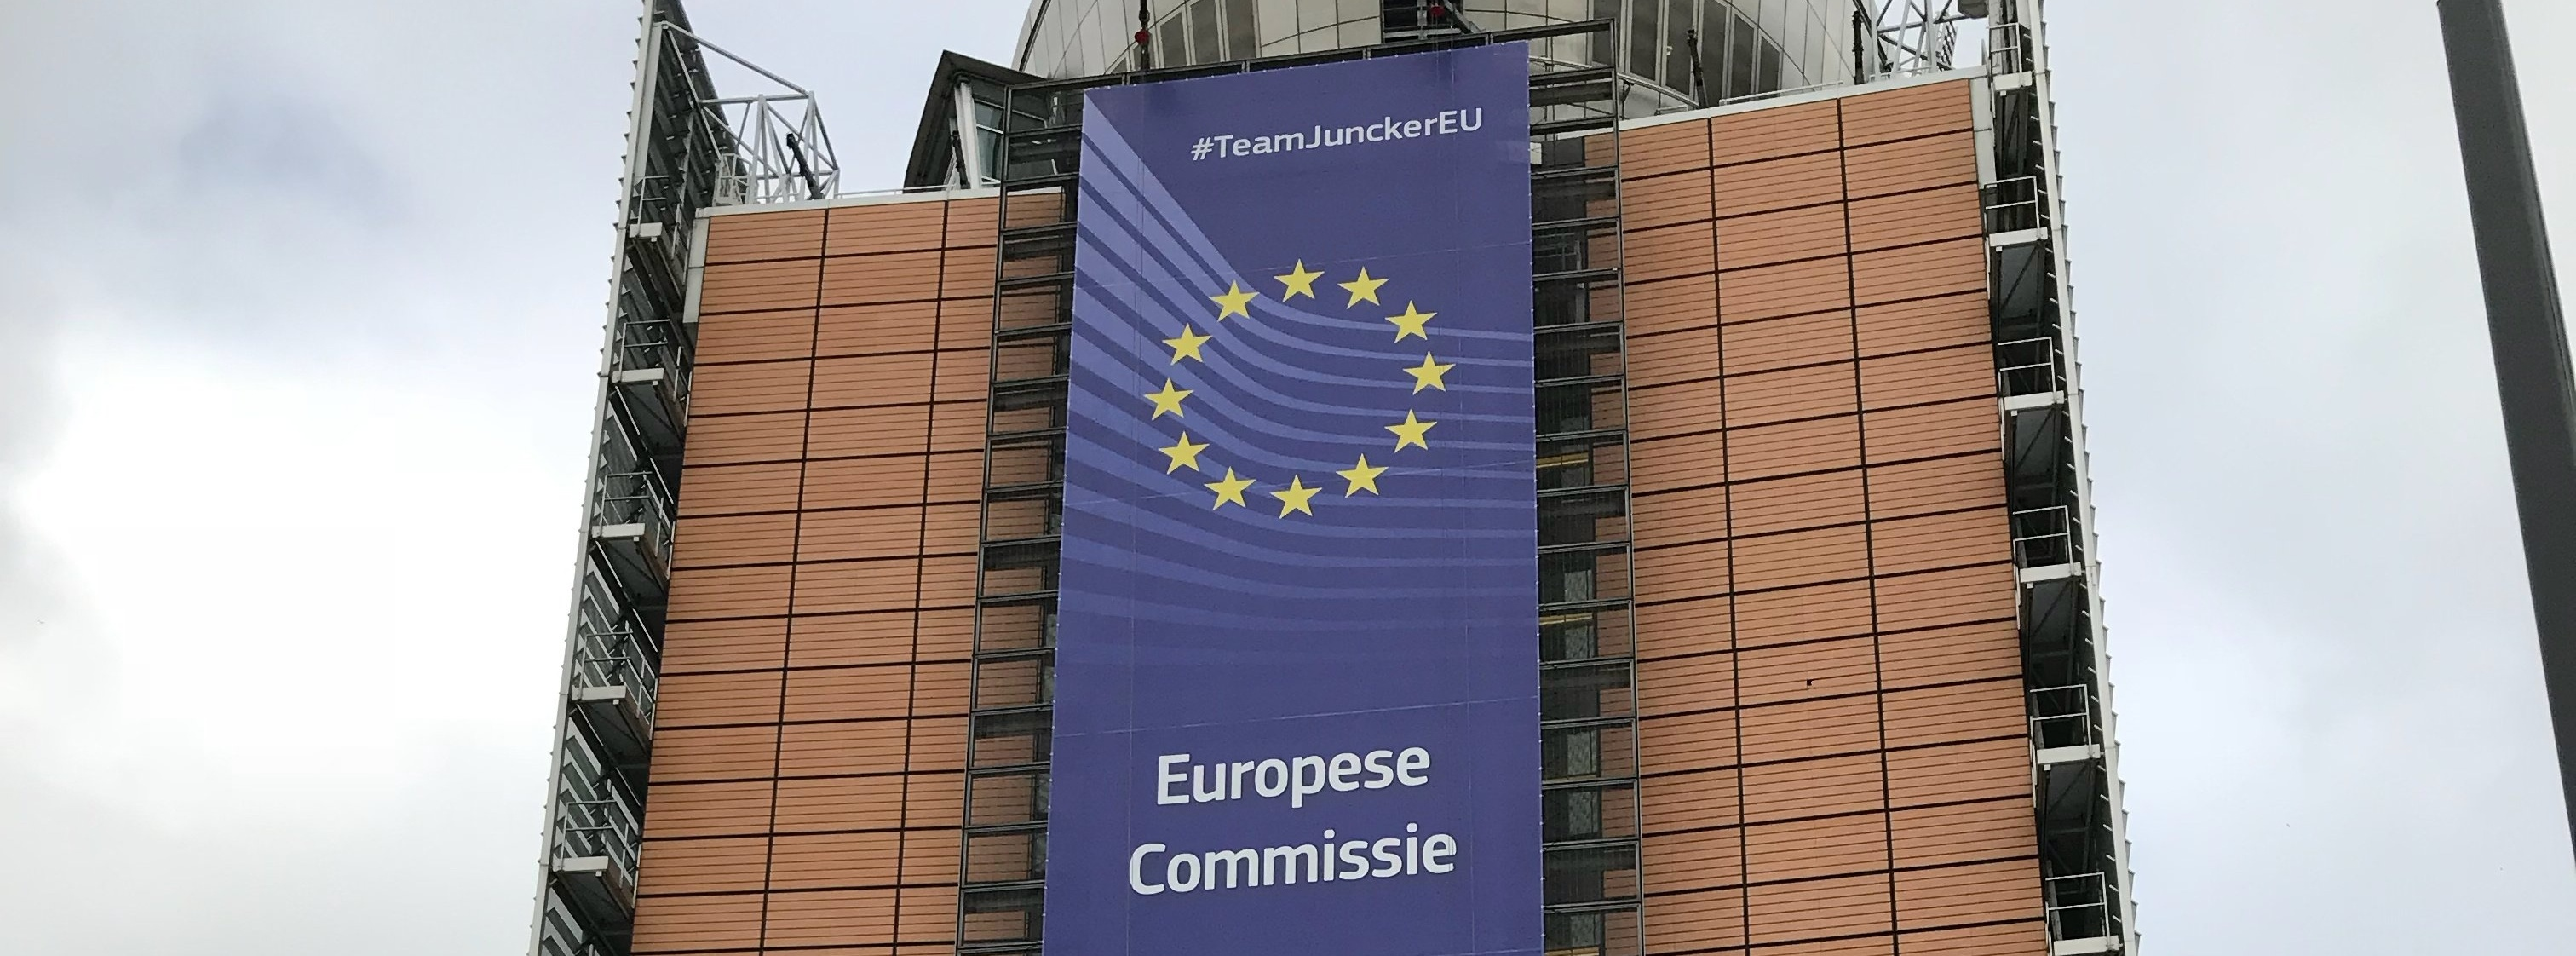 EU Commission-521222-edited.jpg